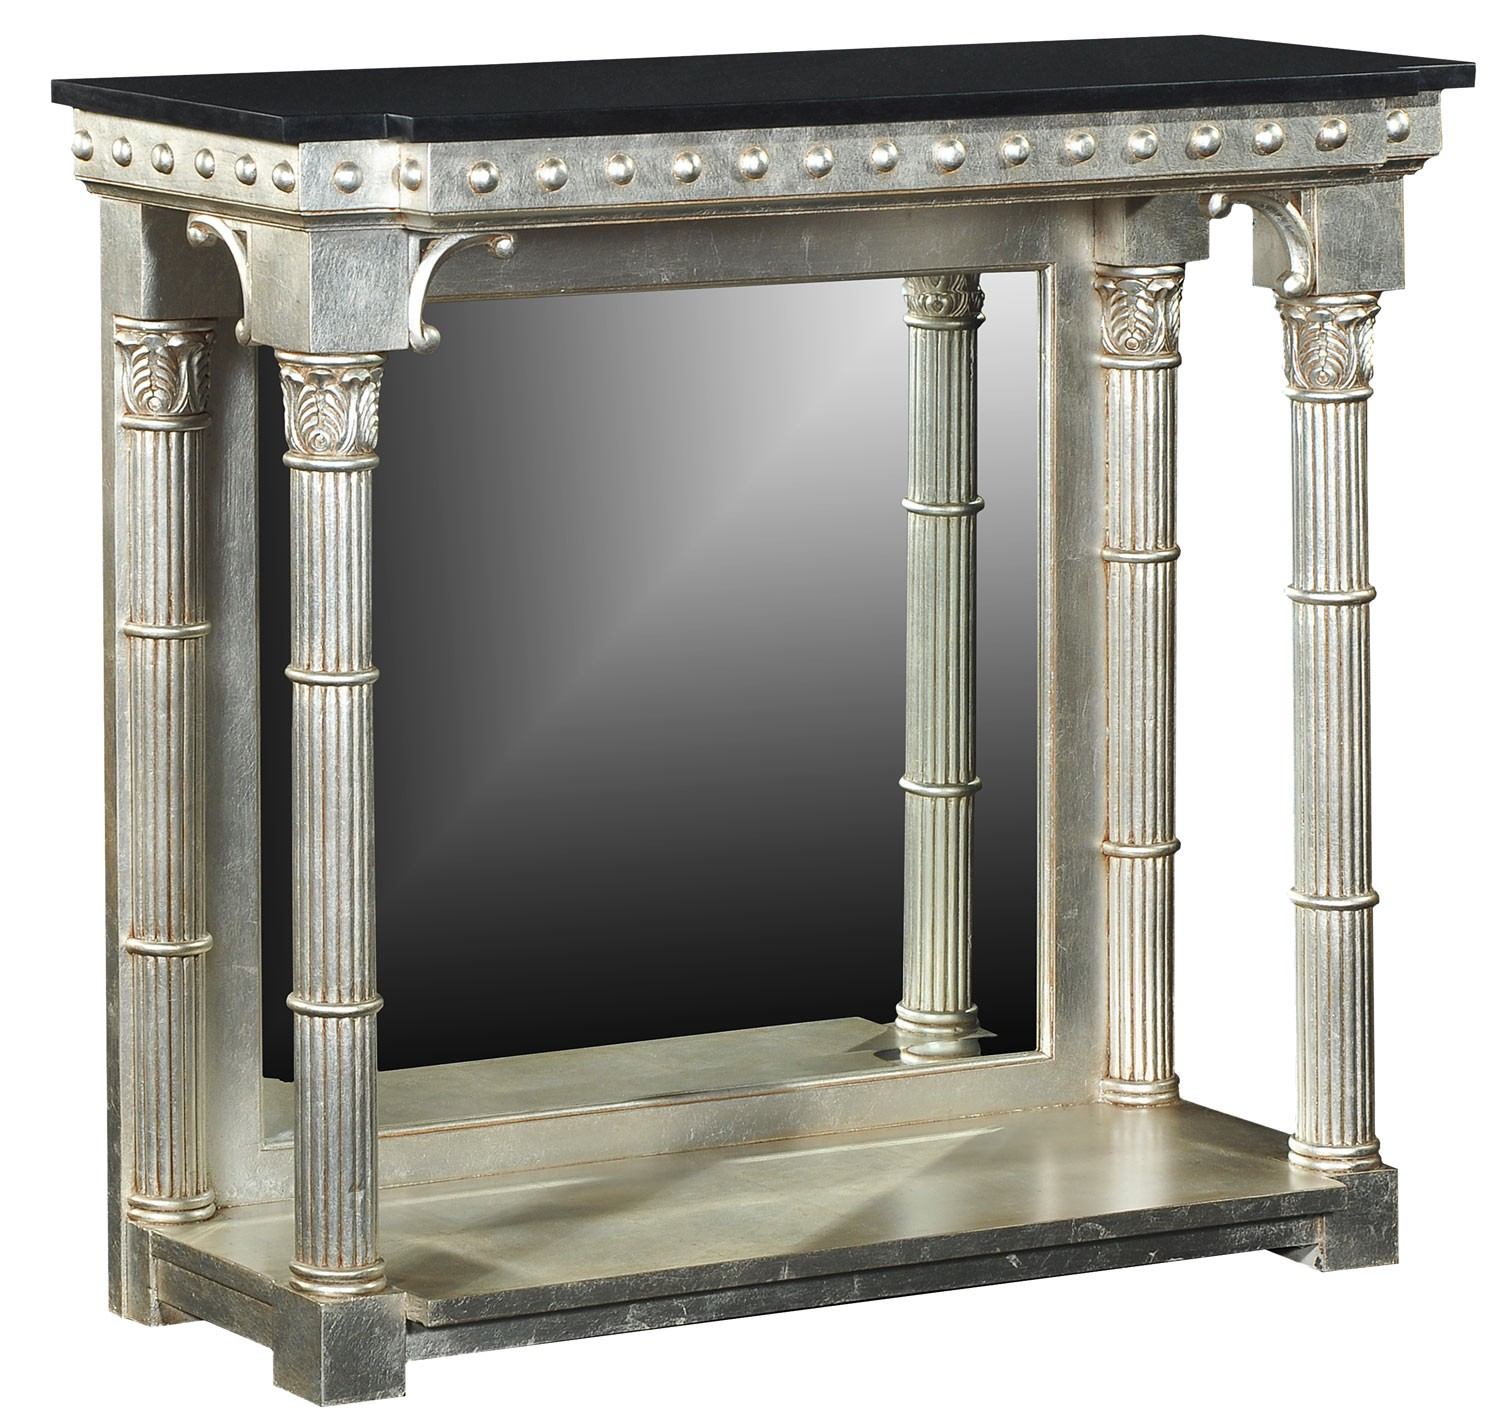 Silver Console Table With Black Granite Top, Console / Hall Tables Regarding Roman Metal Top Console Tables (View 19 of 30)